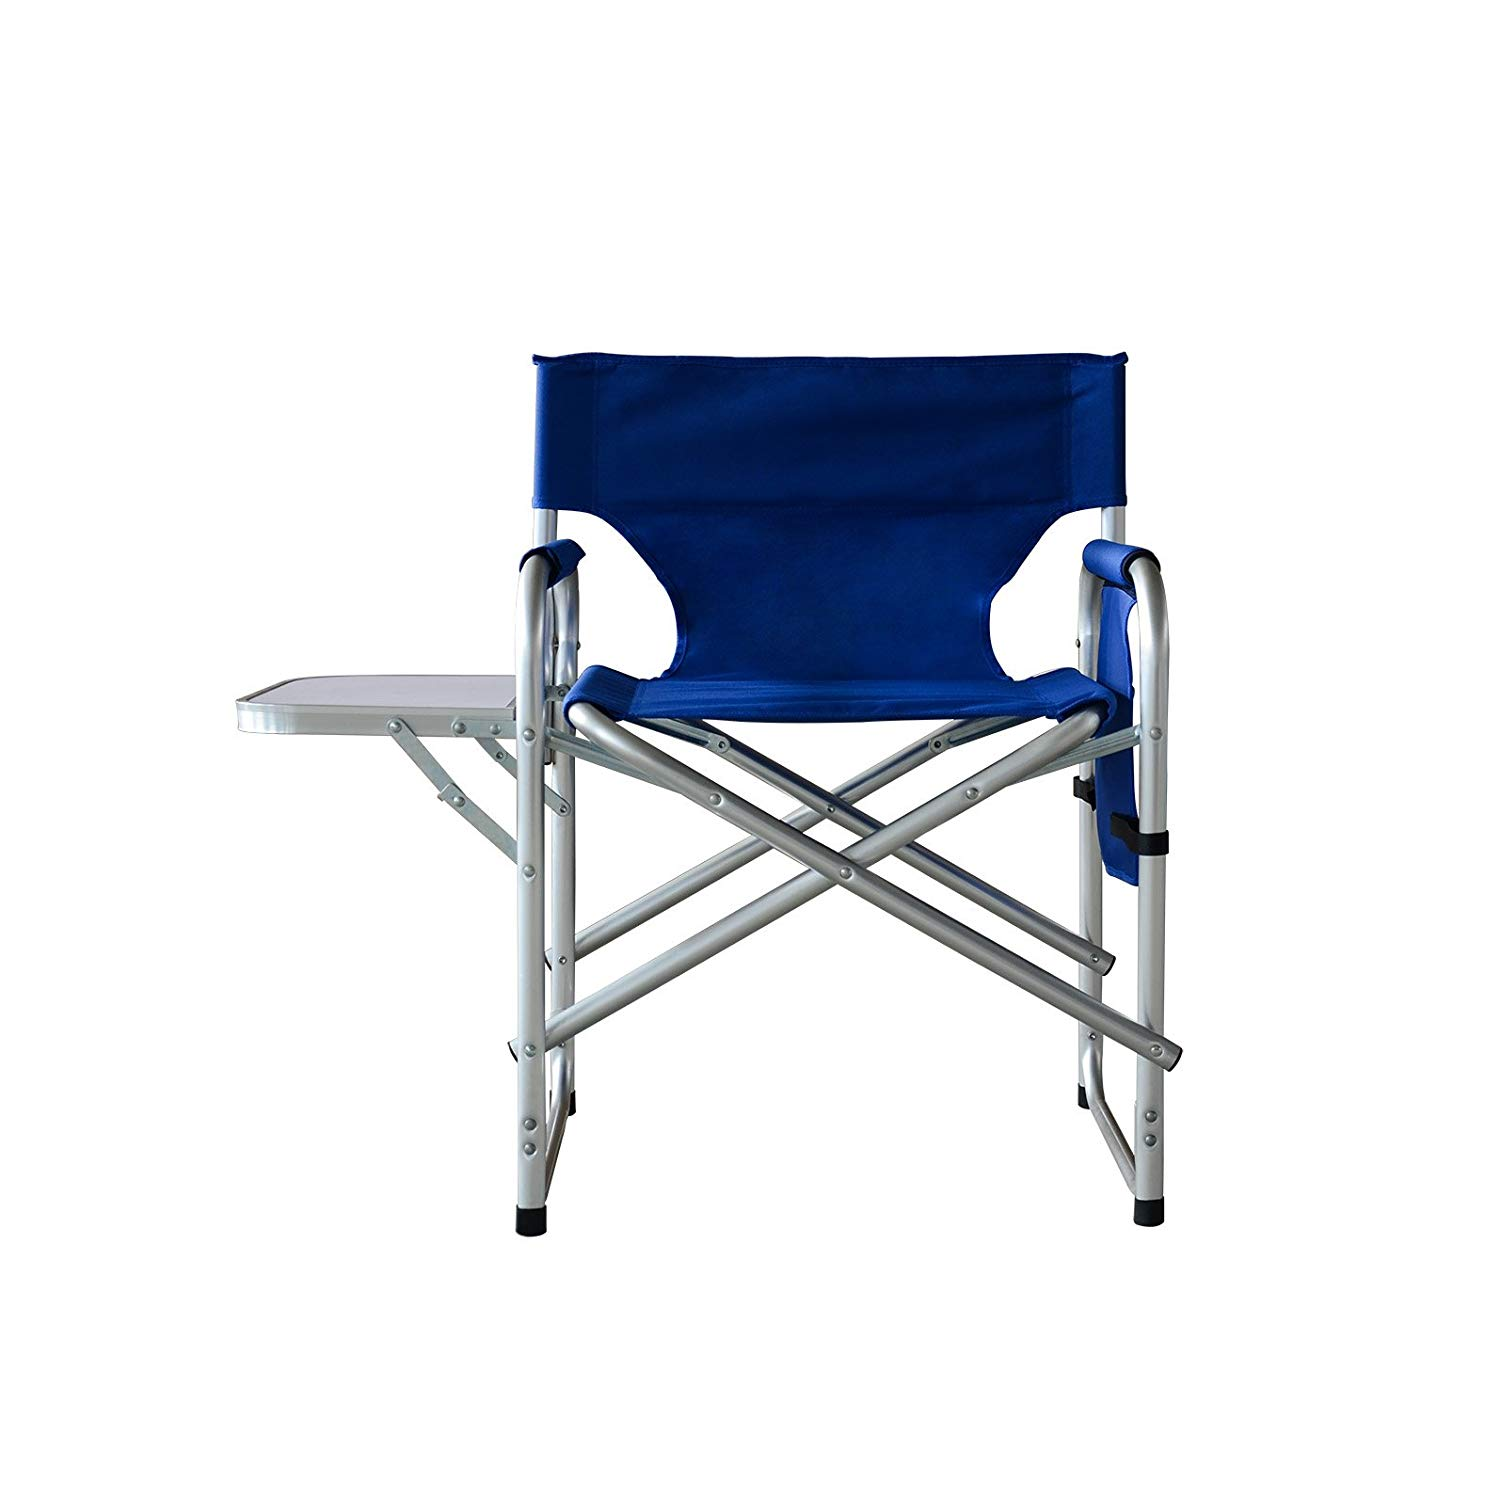 aparesse directors aluminum folding tall chair uvl outdoor side table replacement canvas protable for camping beach patio gargen and more blue kitchen windham furniture collection